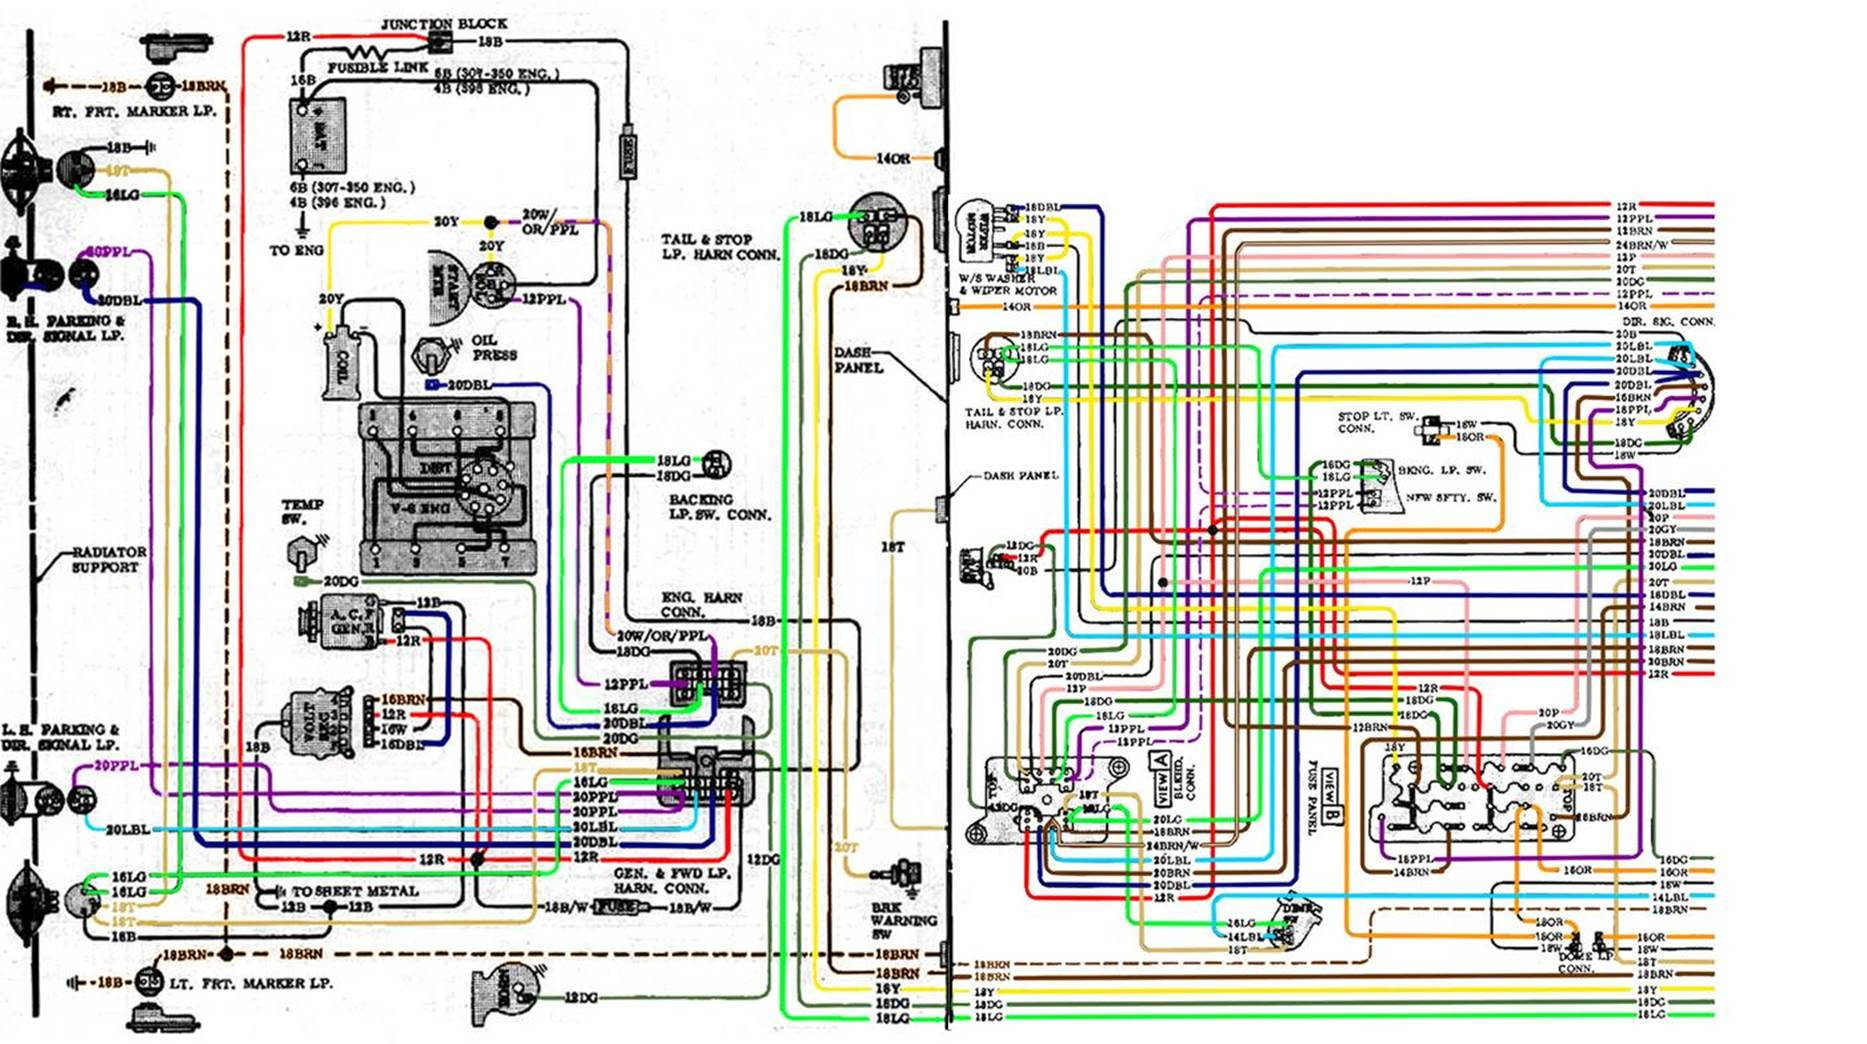 70 chevelle wiring harness wiring diagram Chevelle Engine Wiring Diagrams 70 chevelle starter wiring harness diagram schematic wiring diagram70 chevelle ss wiring harness diagram wiring diagram